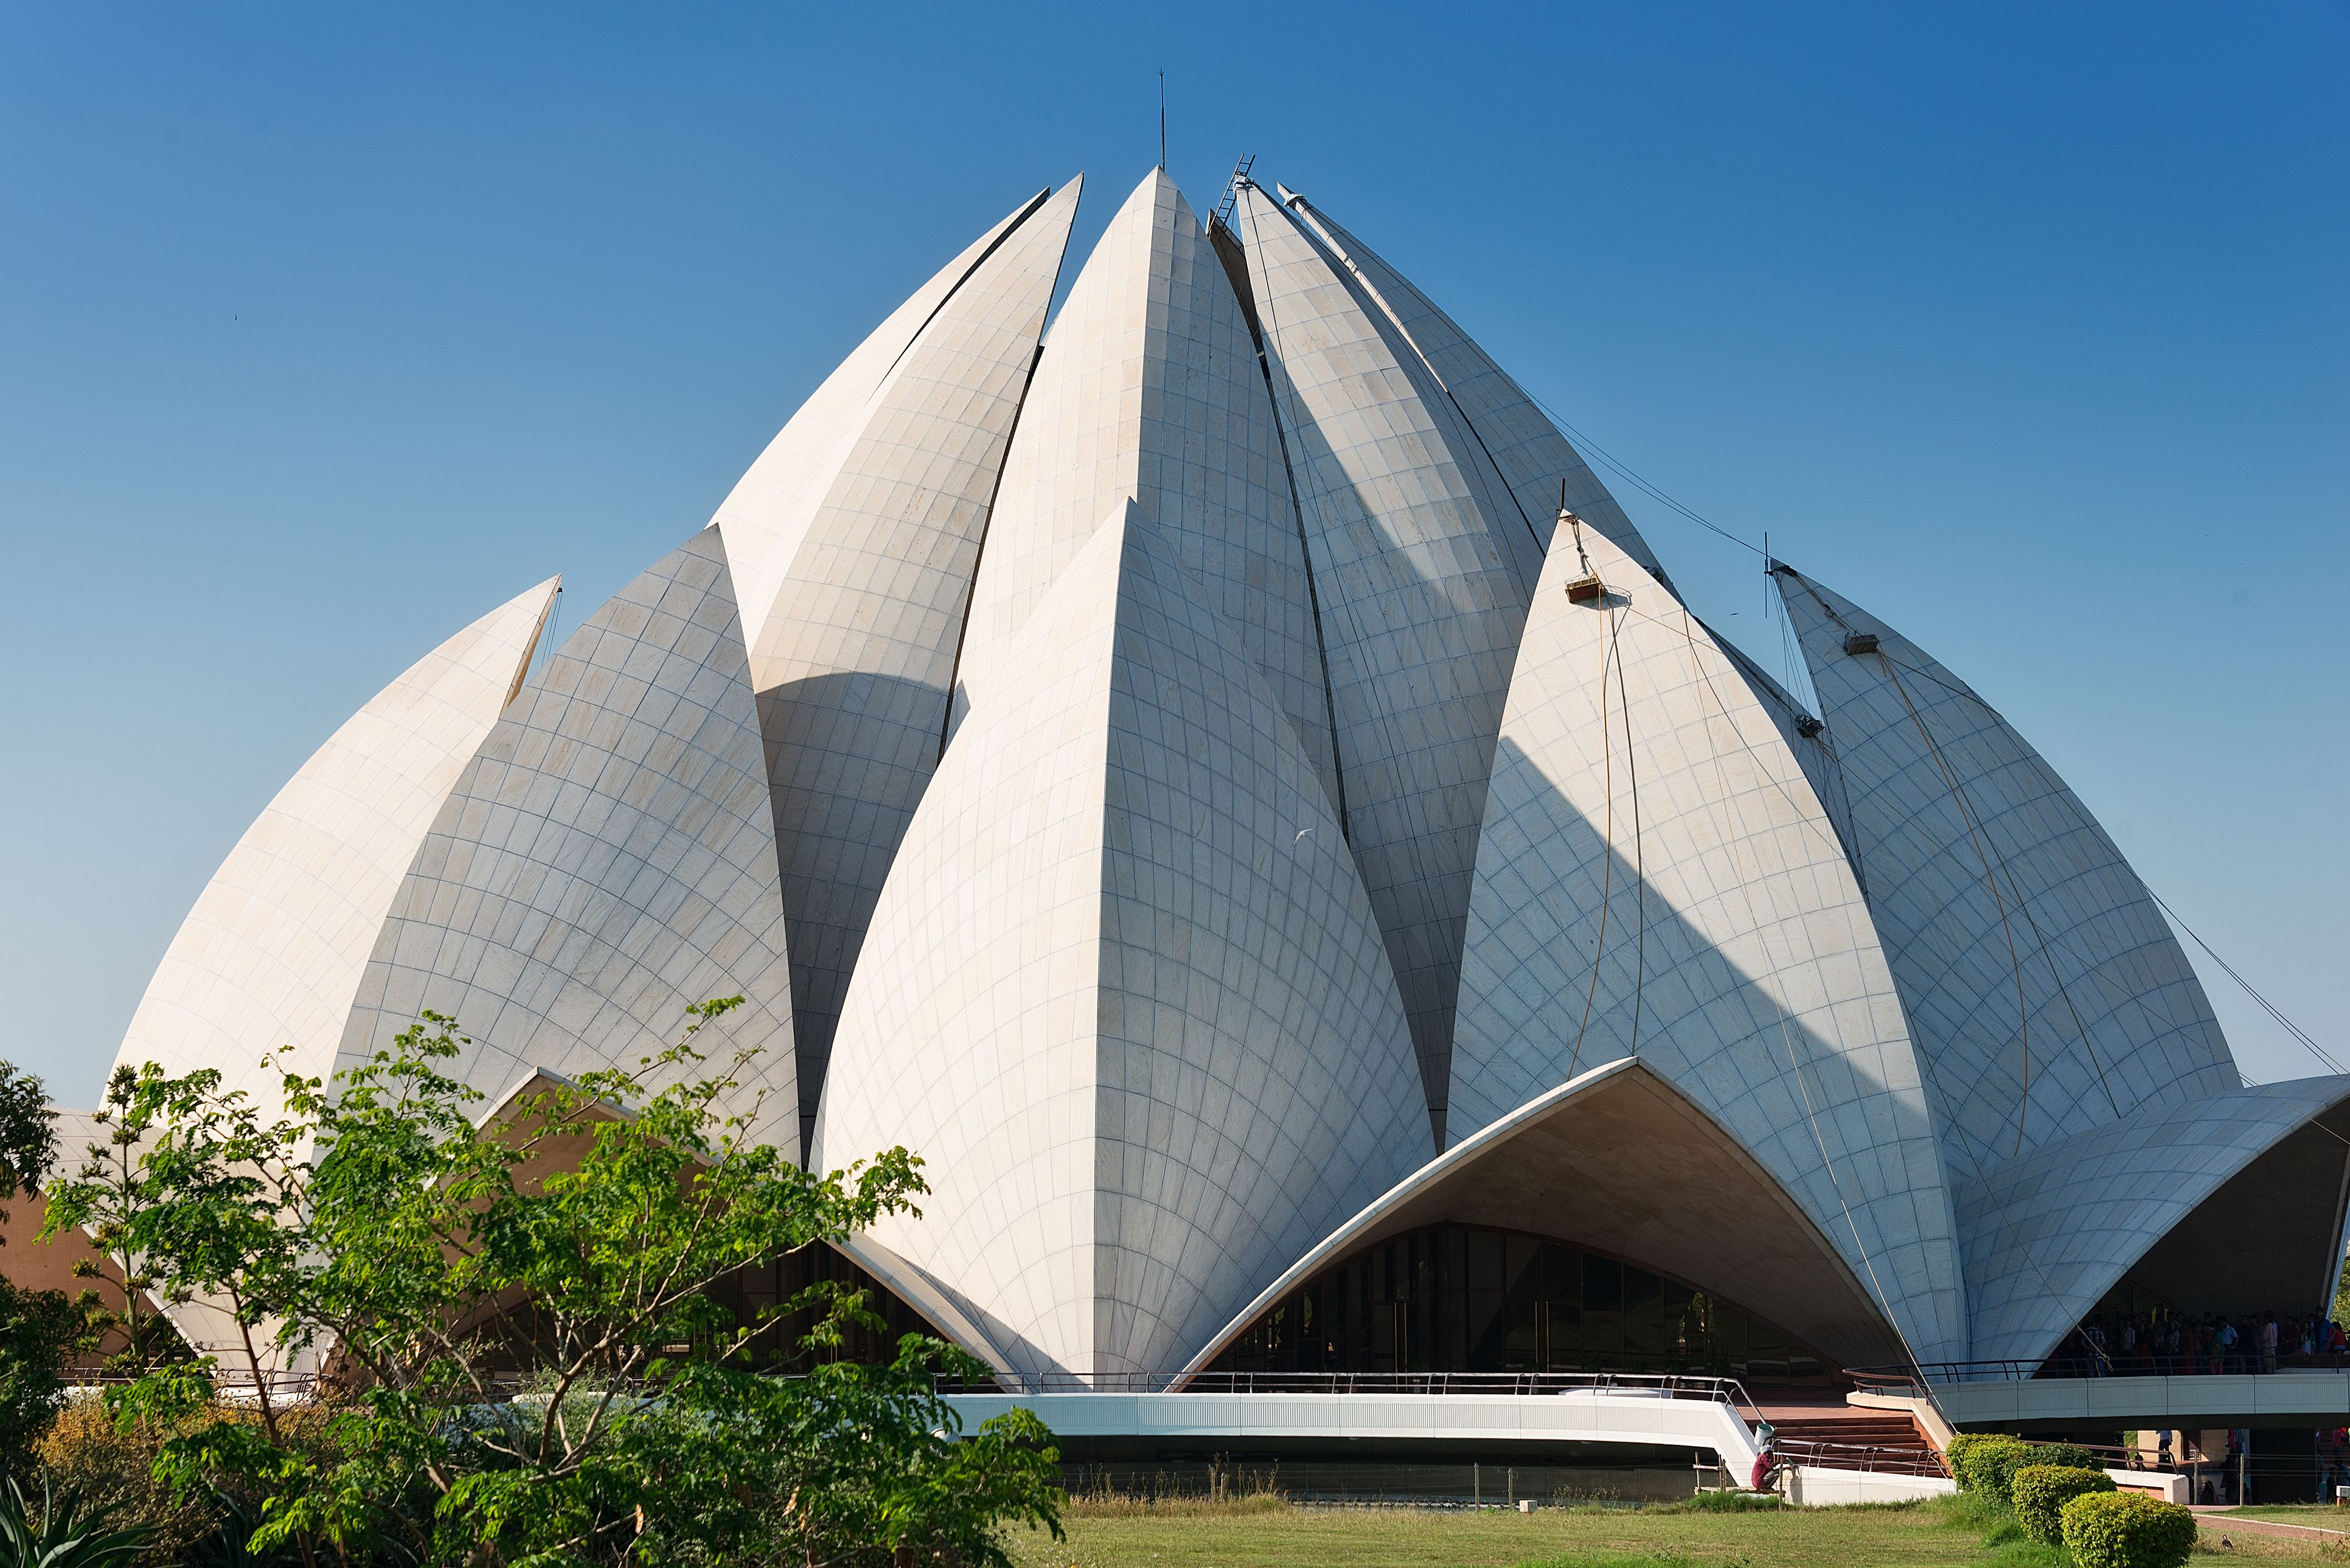 Bahai (Lotus) Temple on clear day in India